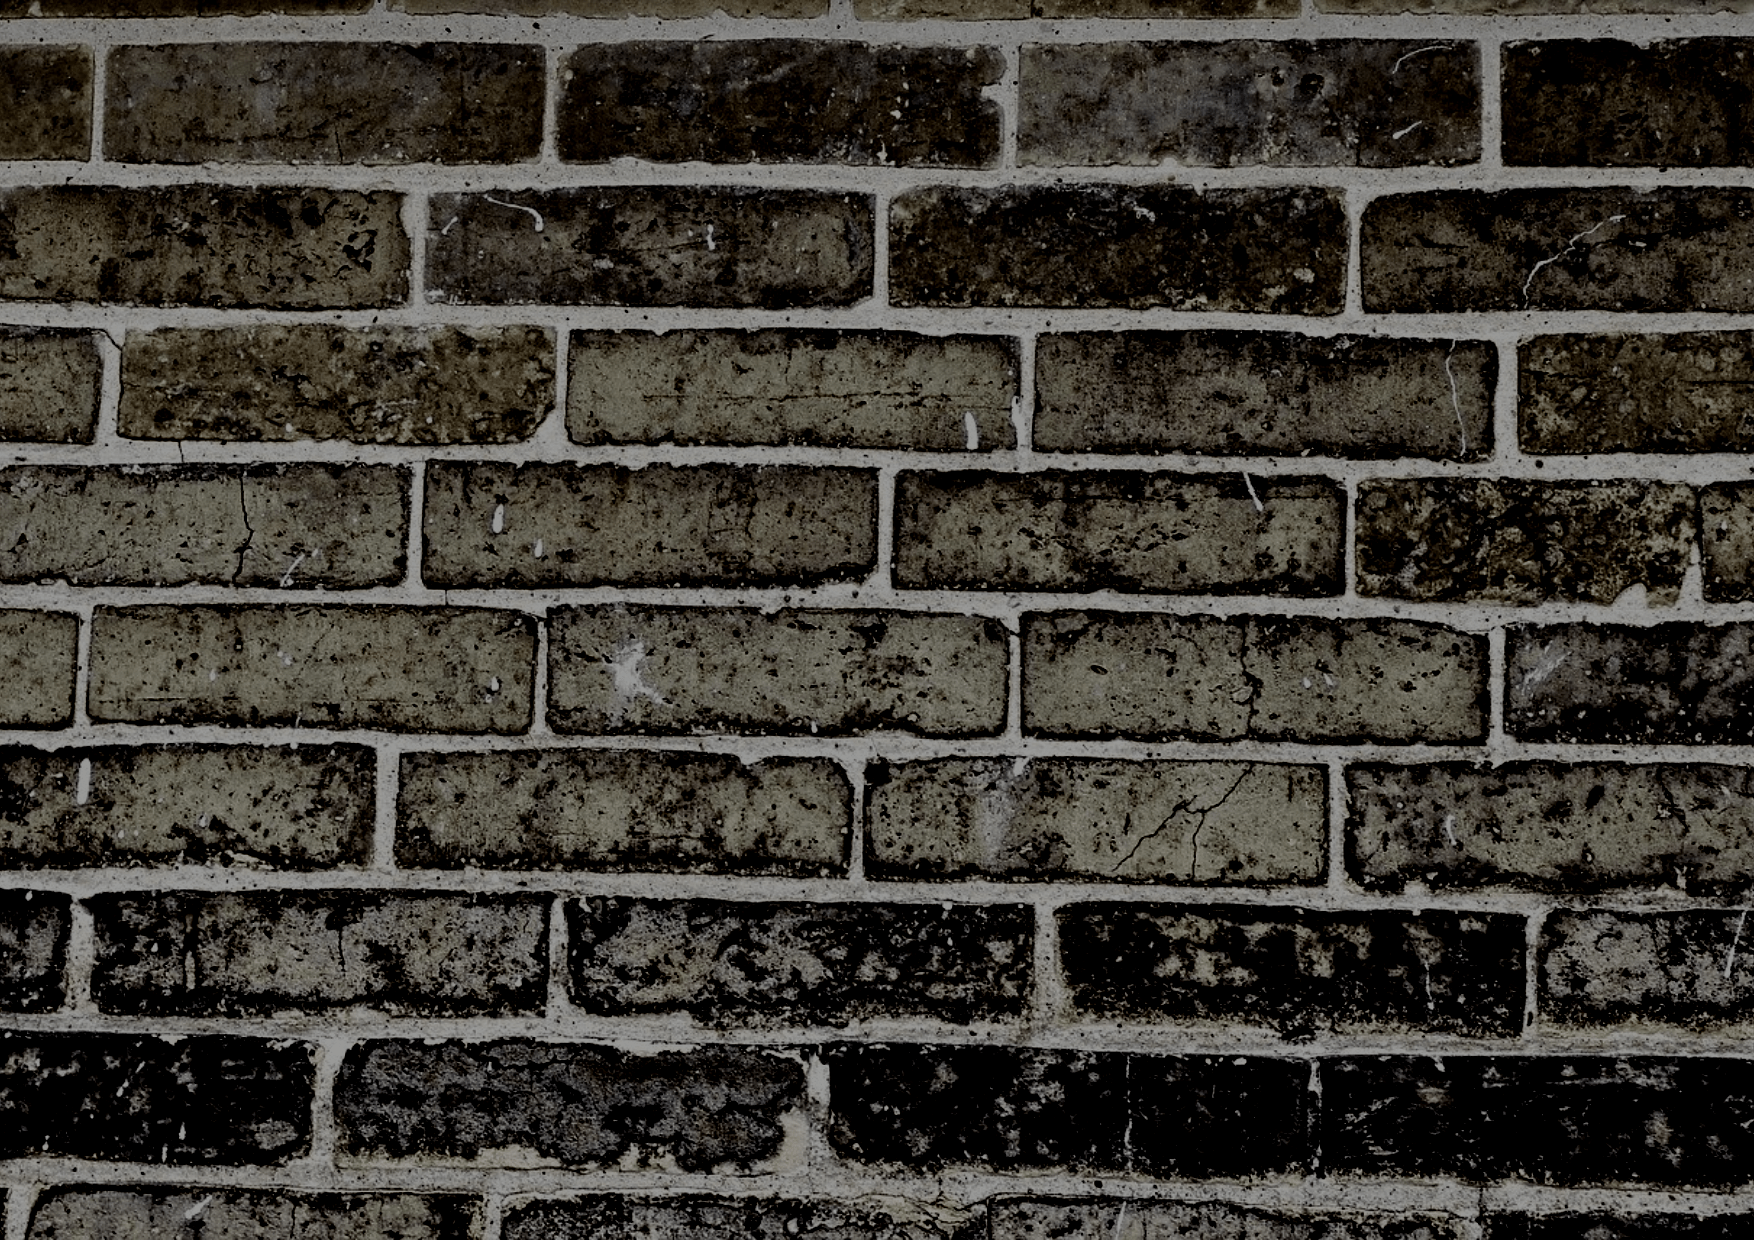 Wall,                Brick,                Brickwork,                Stone,                Material,                Texture,                Cobblestone,                Black,                And,                White,                 Free Image